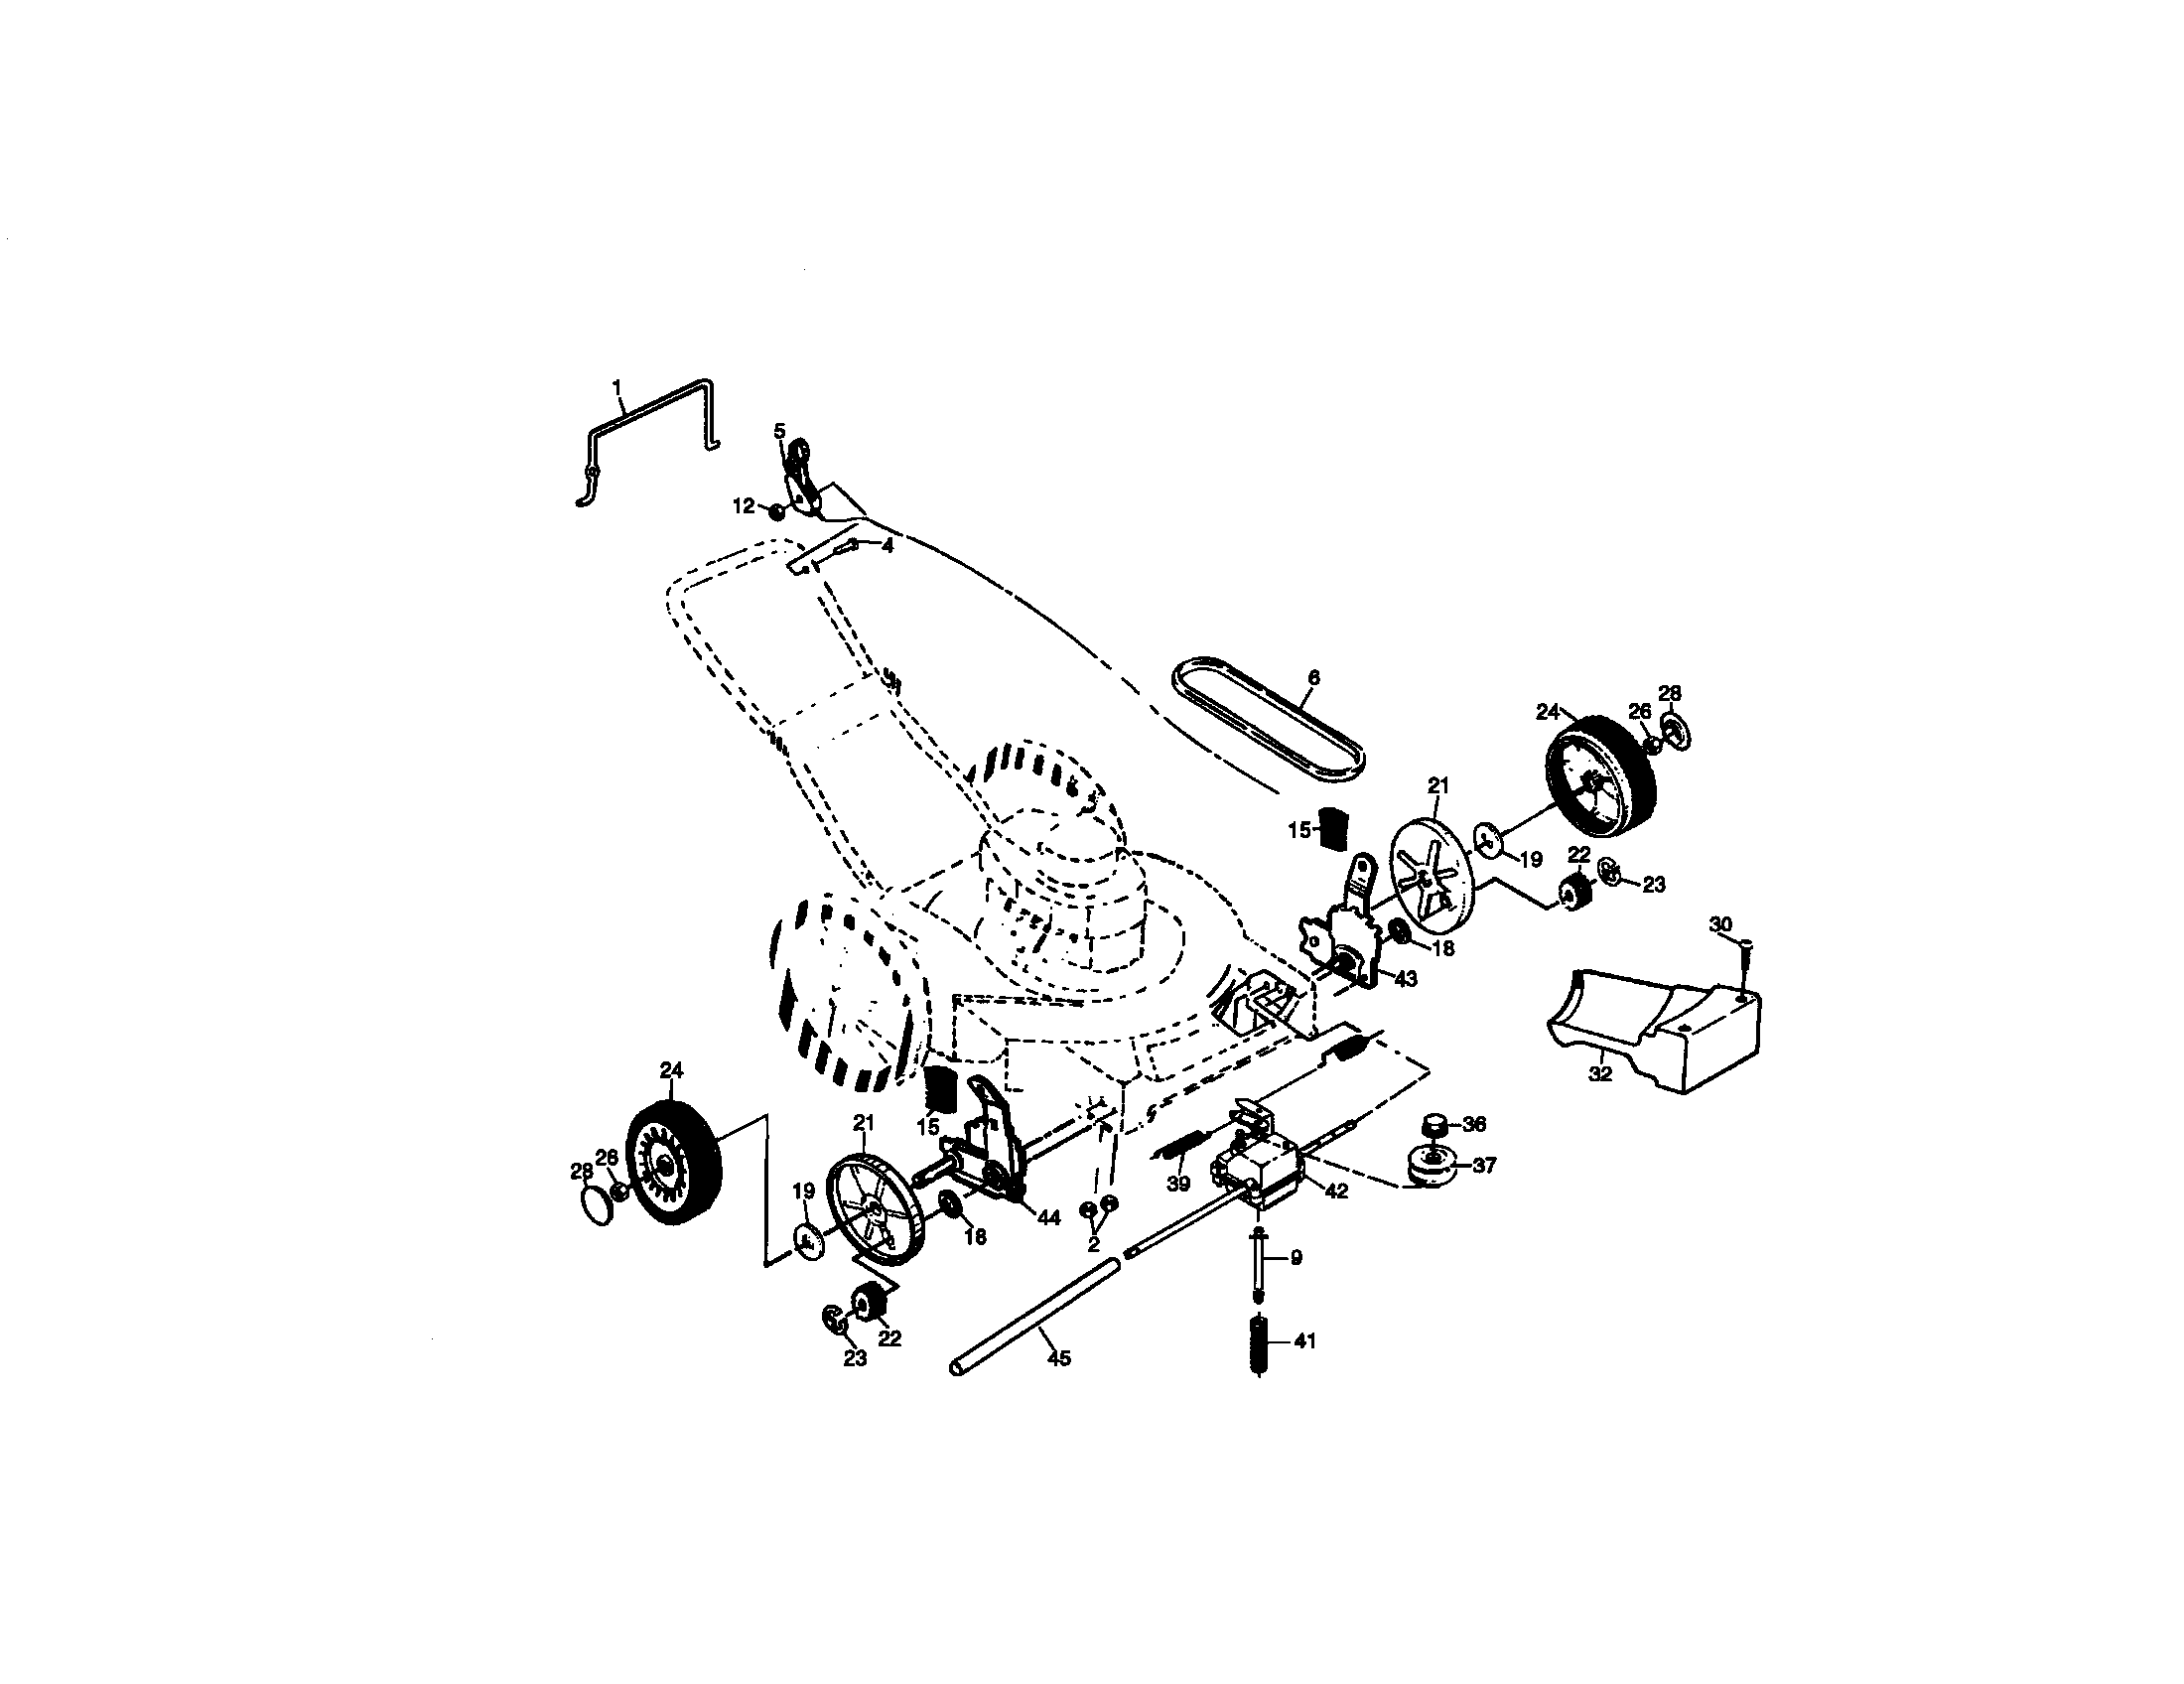 Craftsman 917377423 wheel and tire assembly diagram